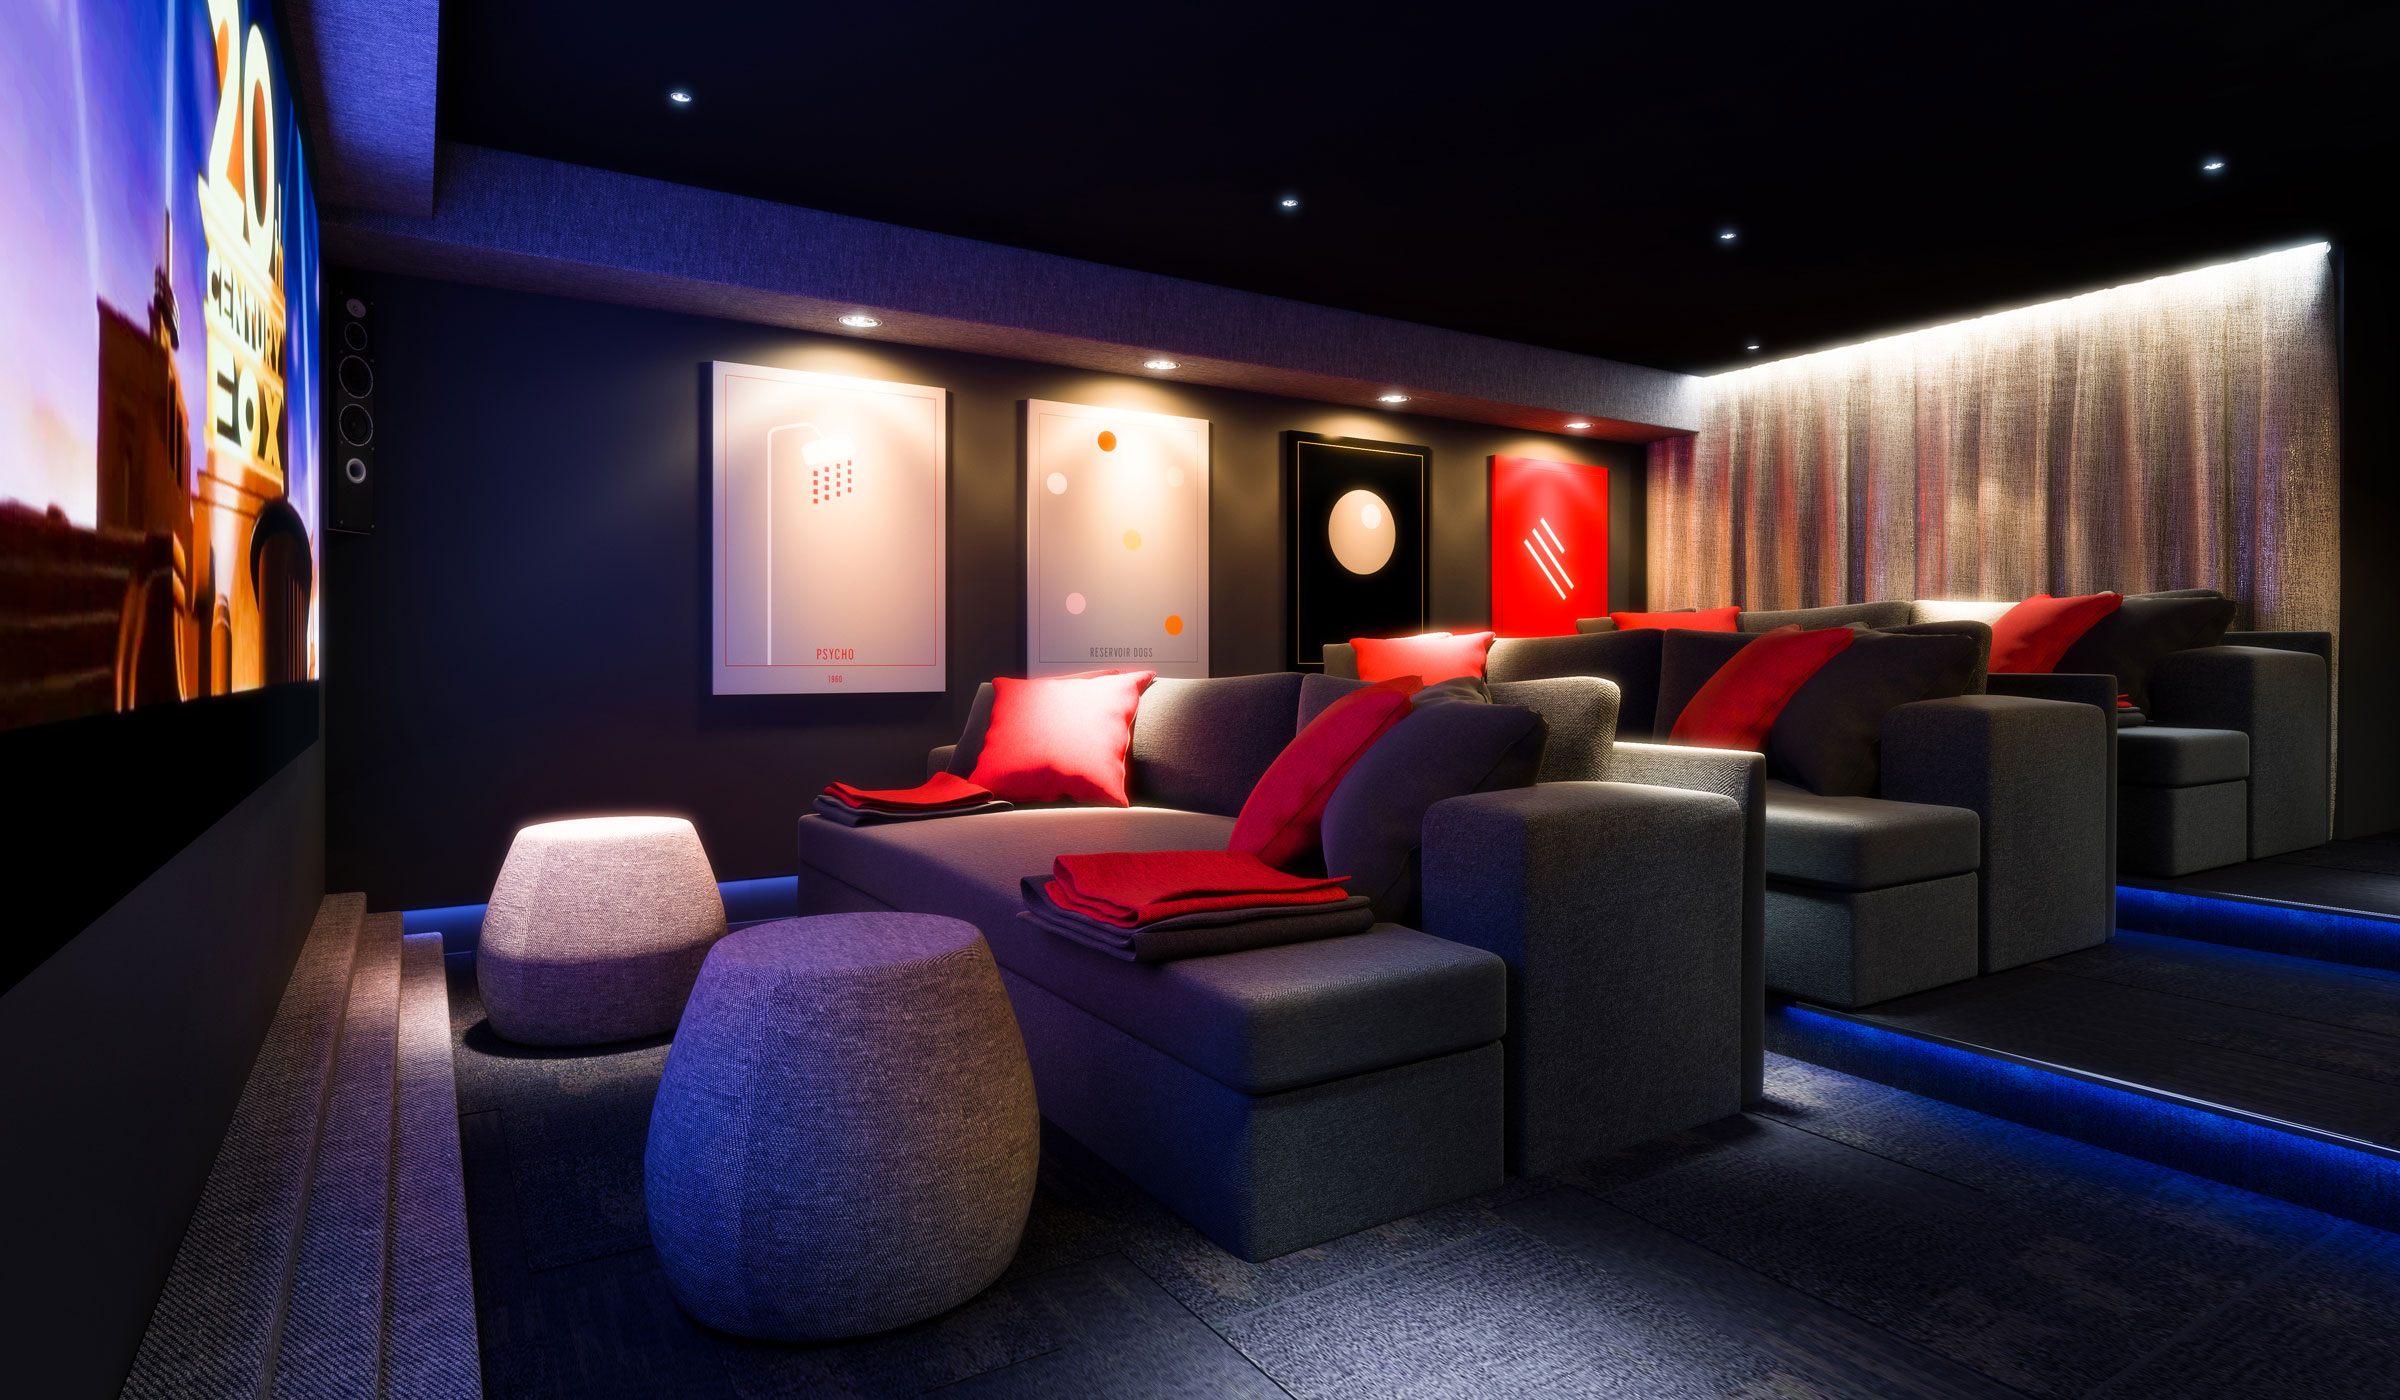 Vibe student accommodation cinema